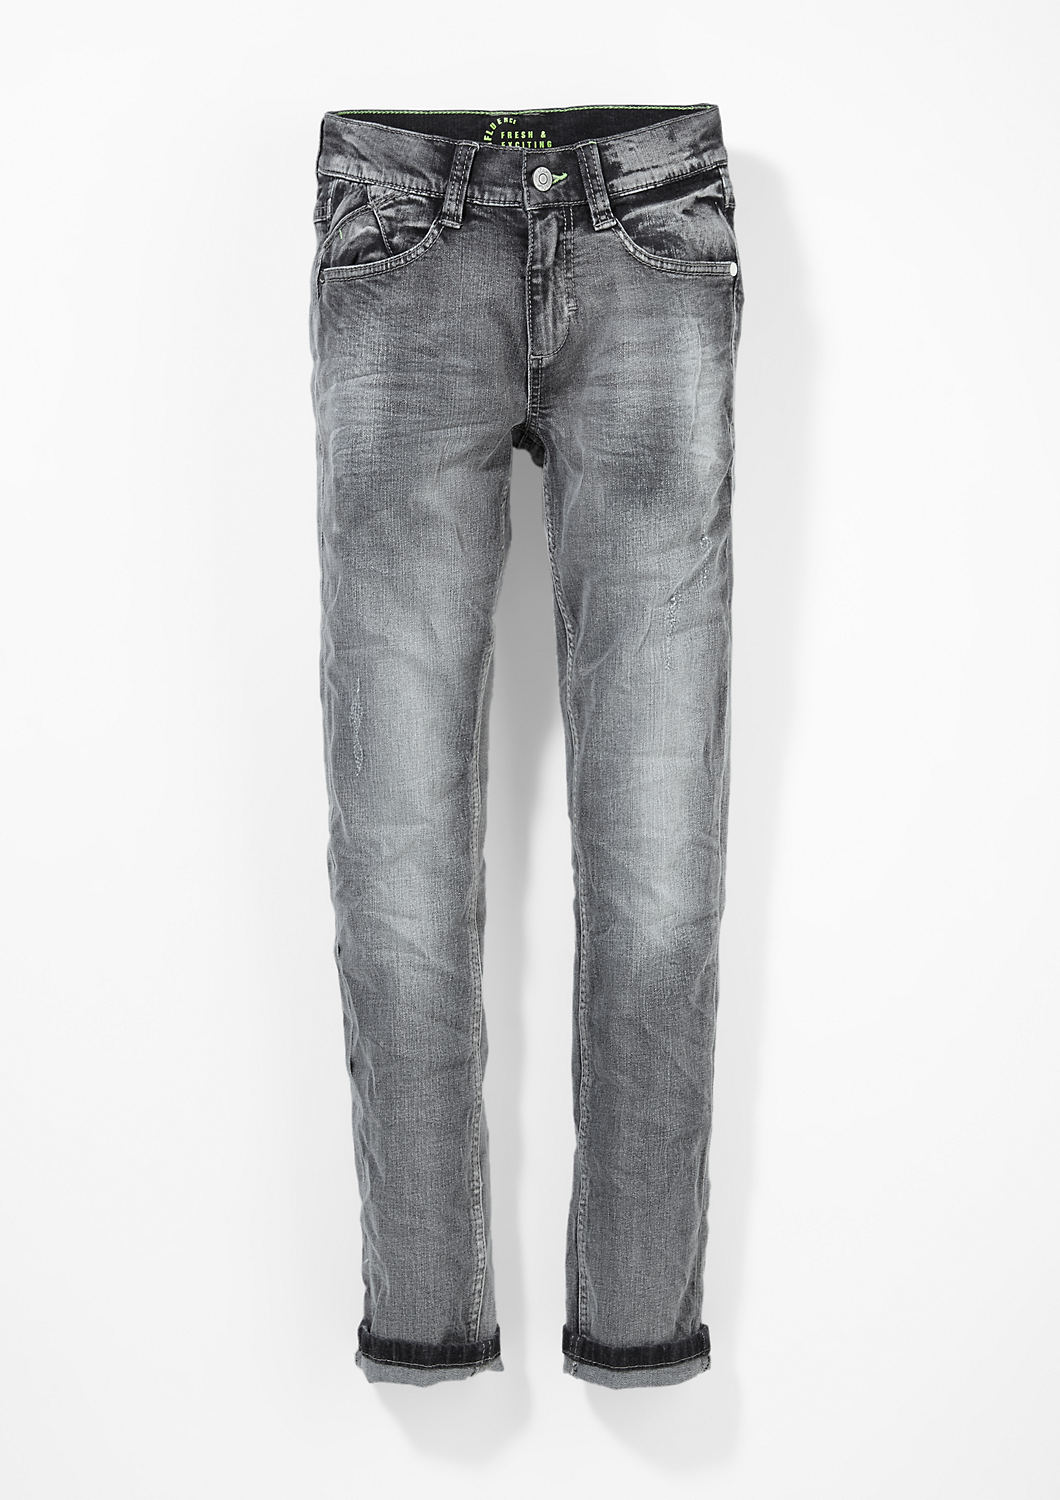 new style 5bdc4 27d59 Buy Skinny Seattle: jeans with neon details   s.Oliver shop